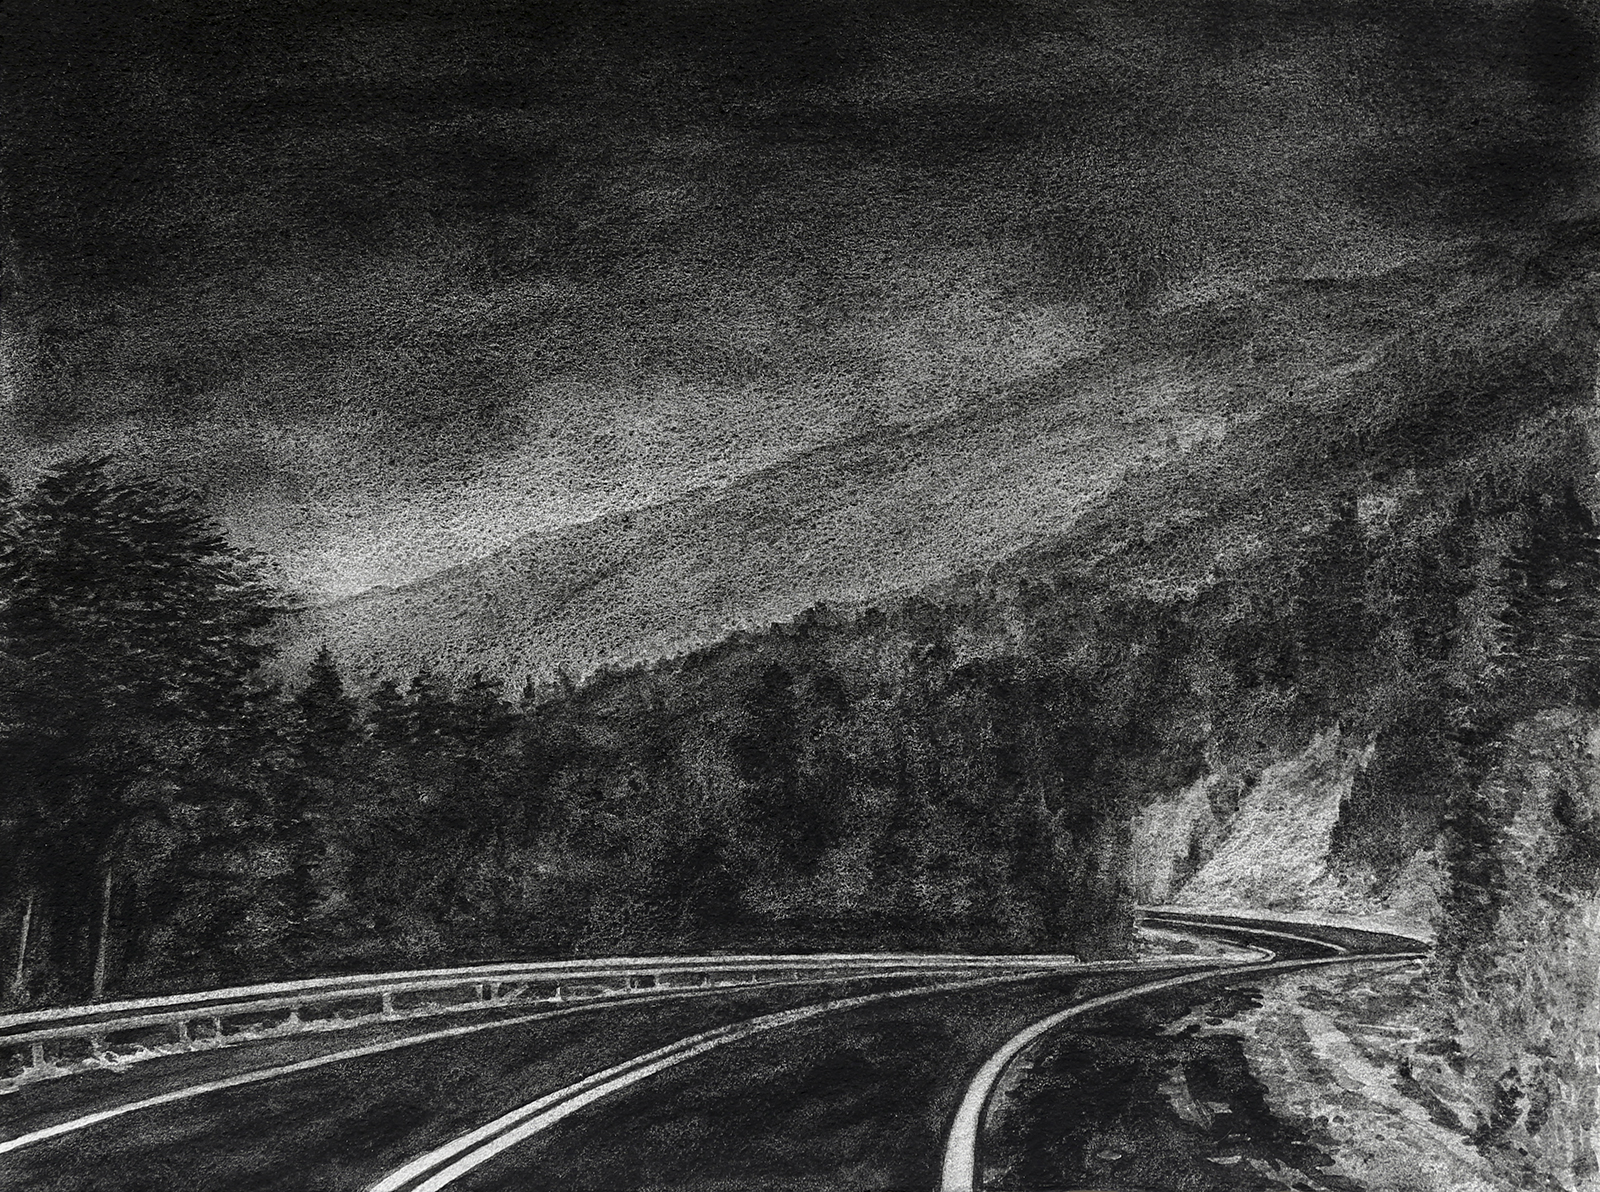 'Dark road' 2016 black ground watercolor with sand on paper 26 x 36 cm